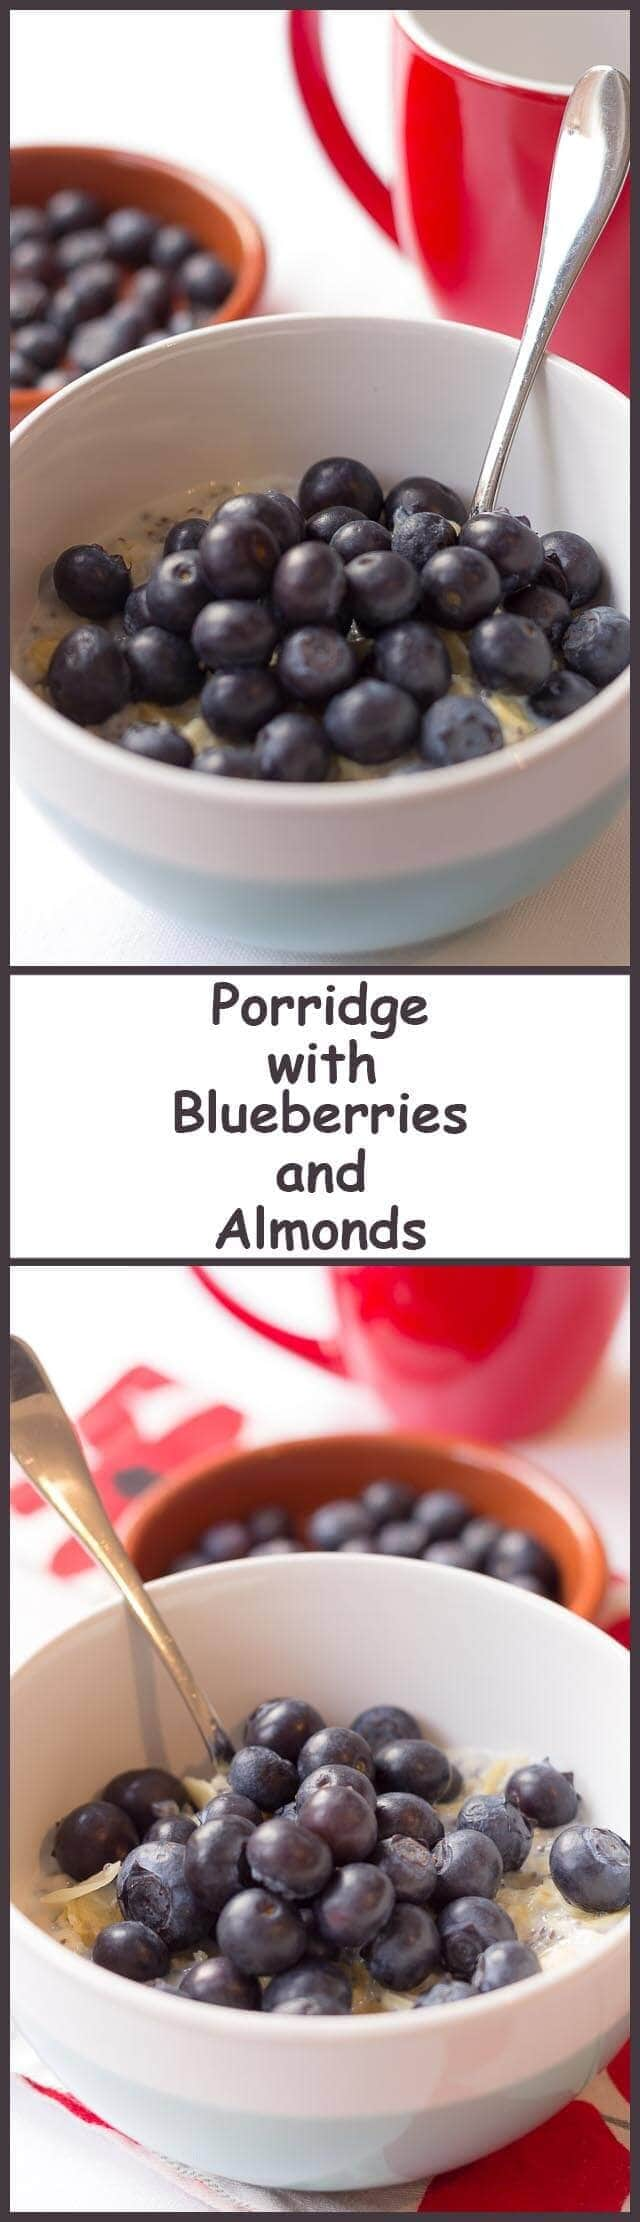 This tasty breakfast of porridge with blueberries and almonds is made from traditional rolled oats. It's a simple low cost quick healthy meal. And a perfect start to the day. Packed full of fibre and energy, it keeps you fuller for longer!